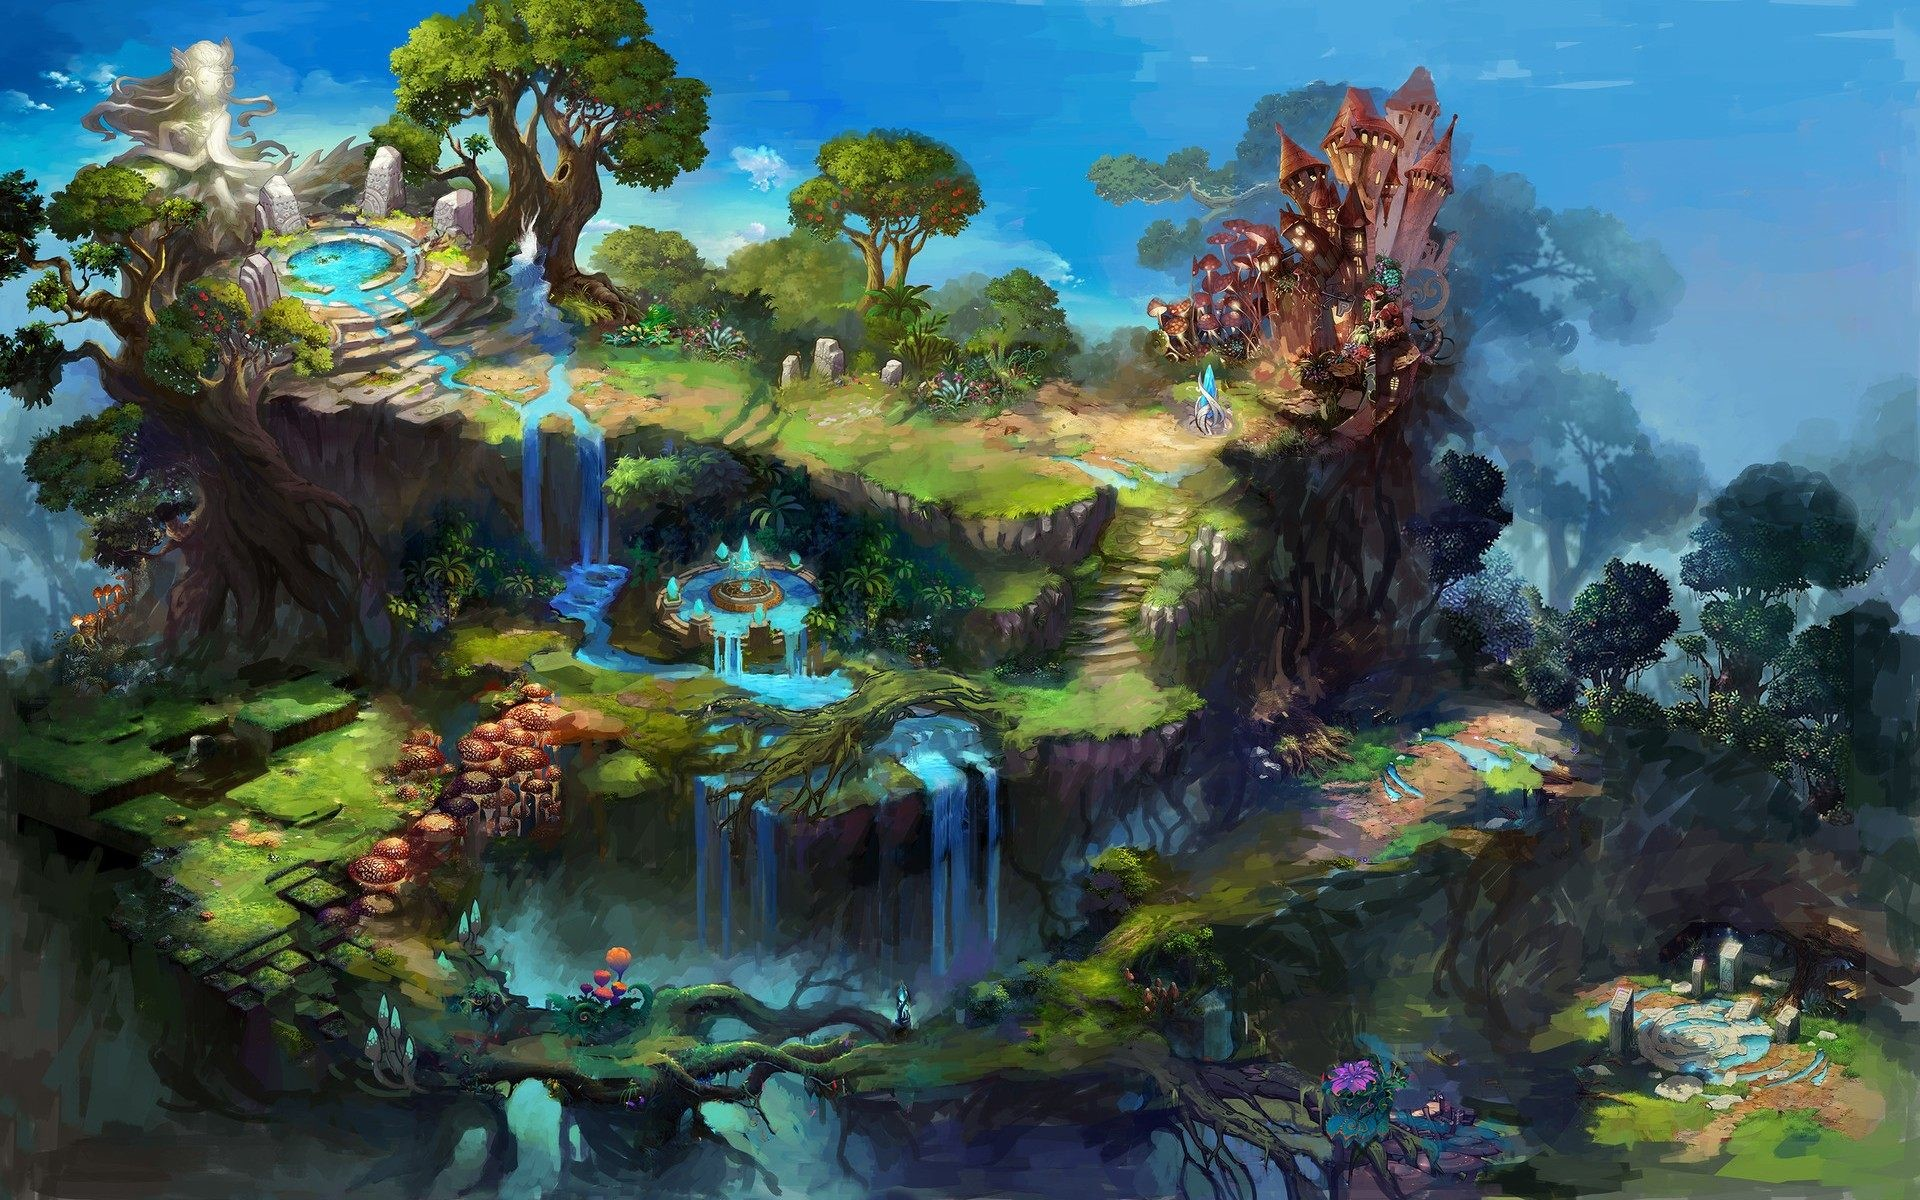 1920x1200 Wallpapers of Fantasy World HD Widescreen